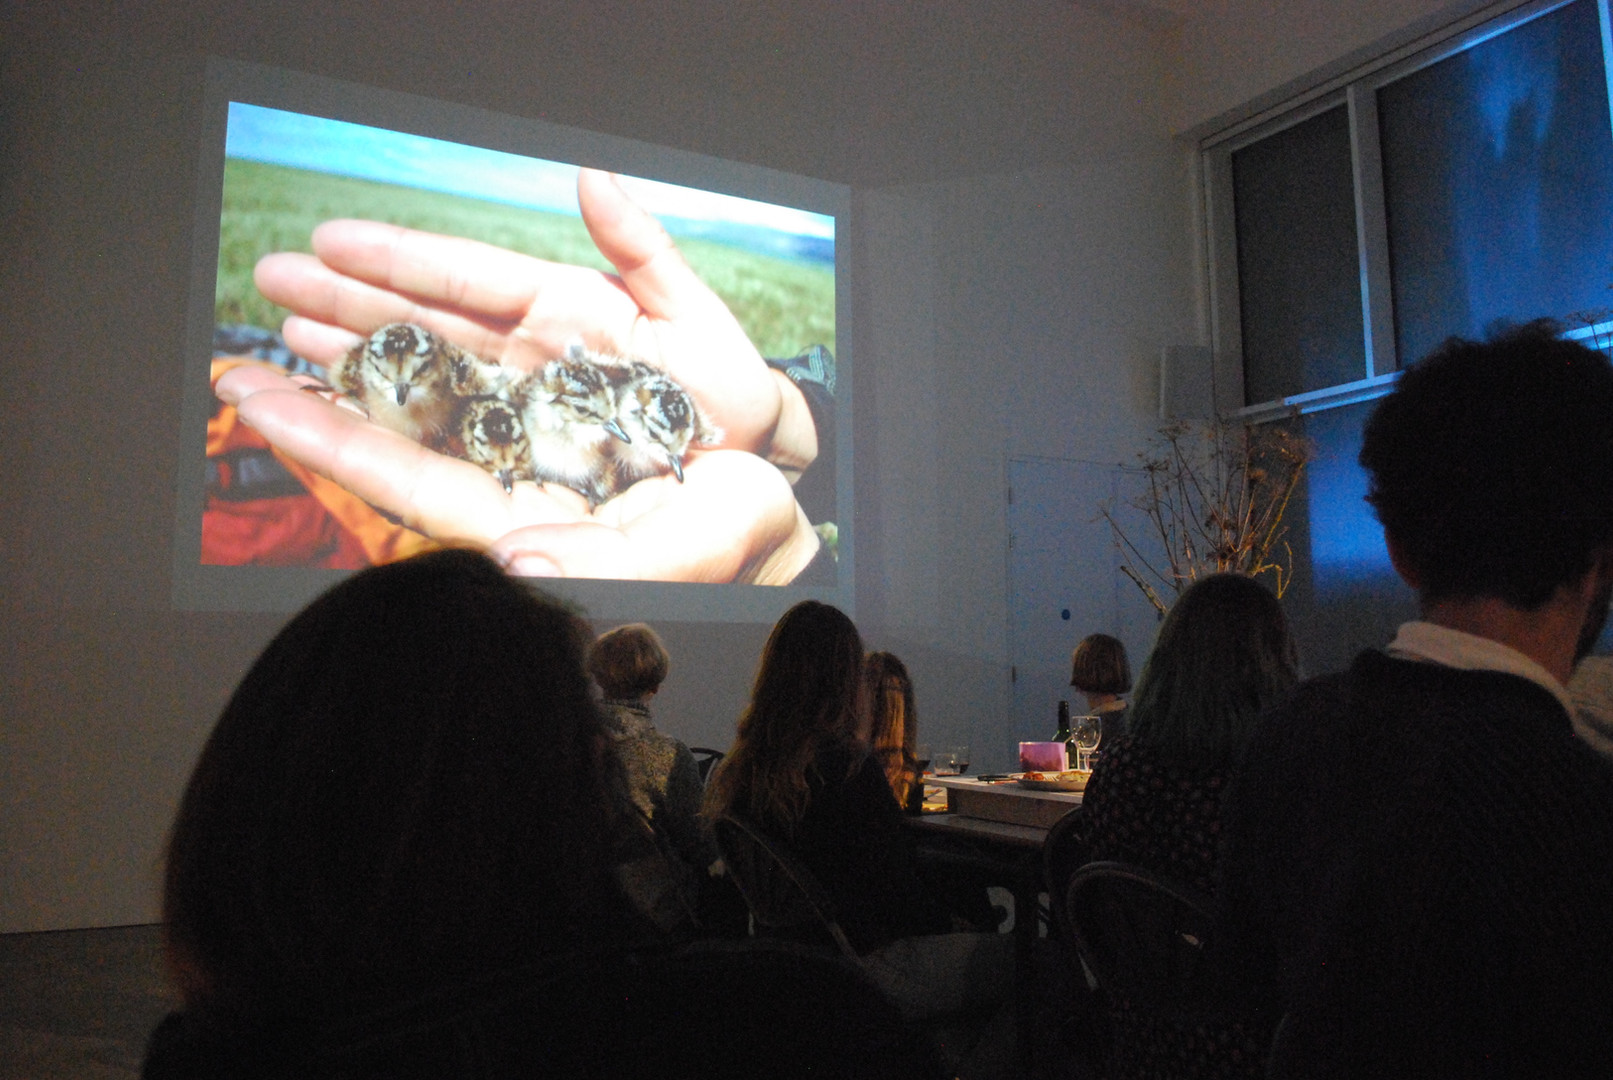 A presentation on ornithology, connection and climate-change